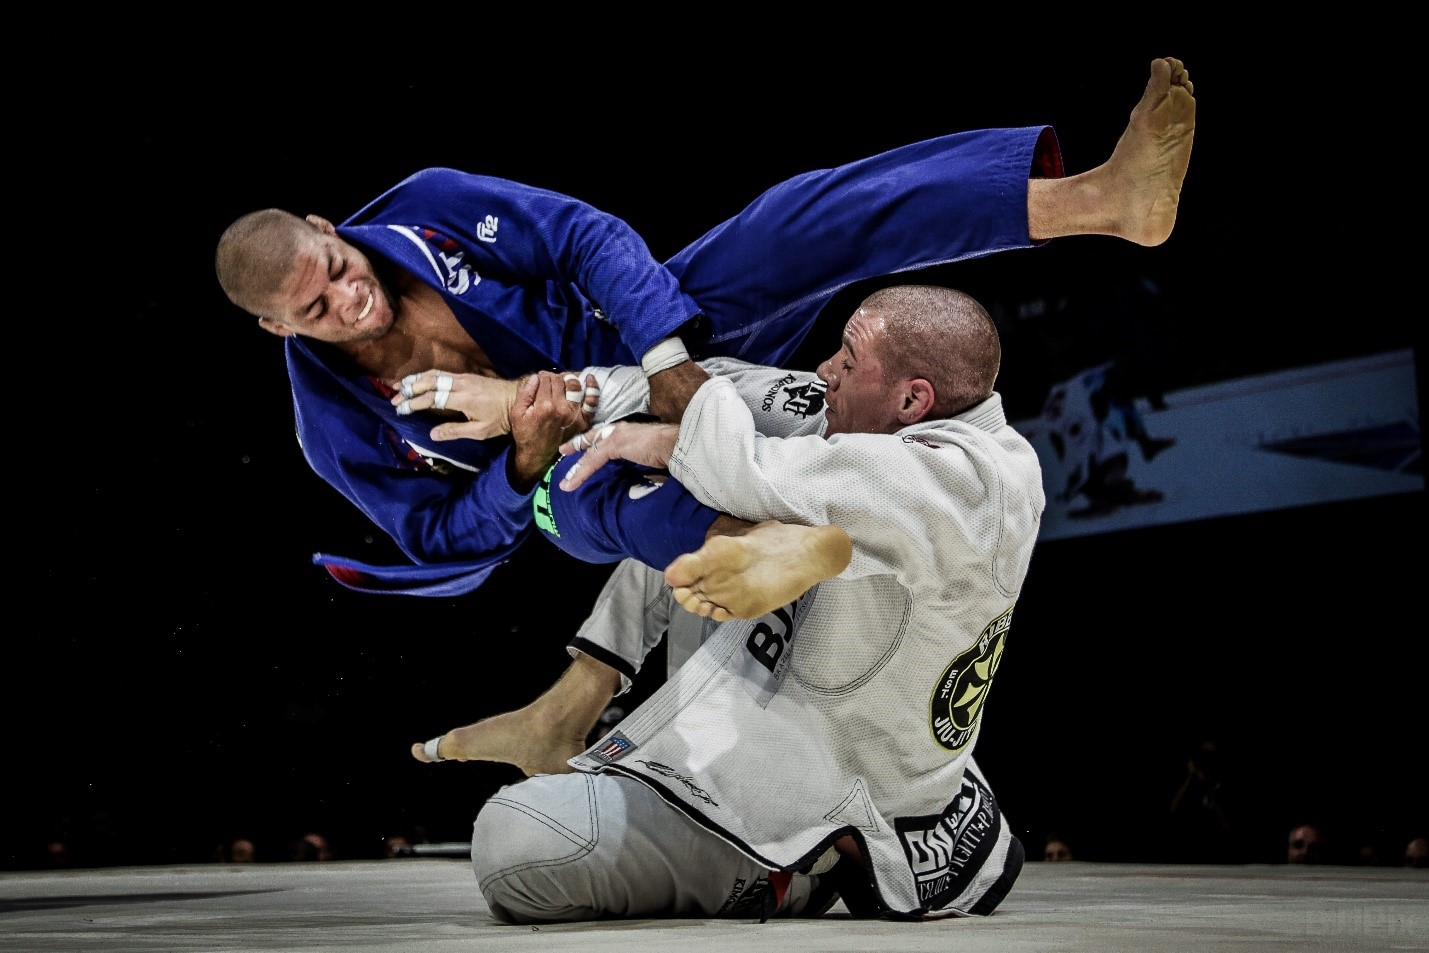 Two advanced fighters go head to head in a traditional BJJ match.